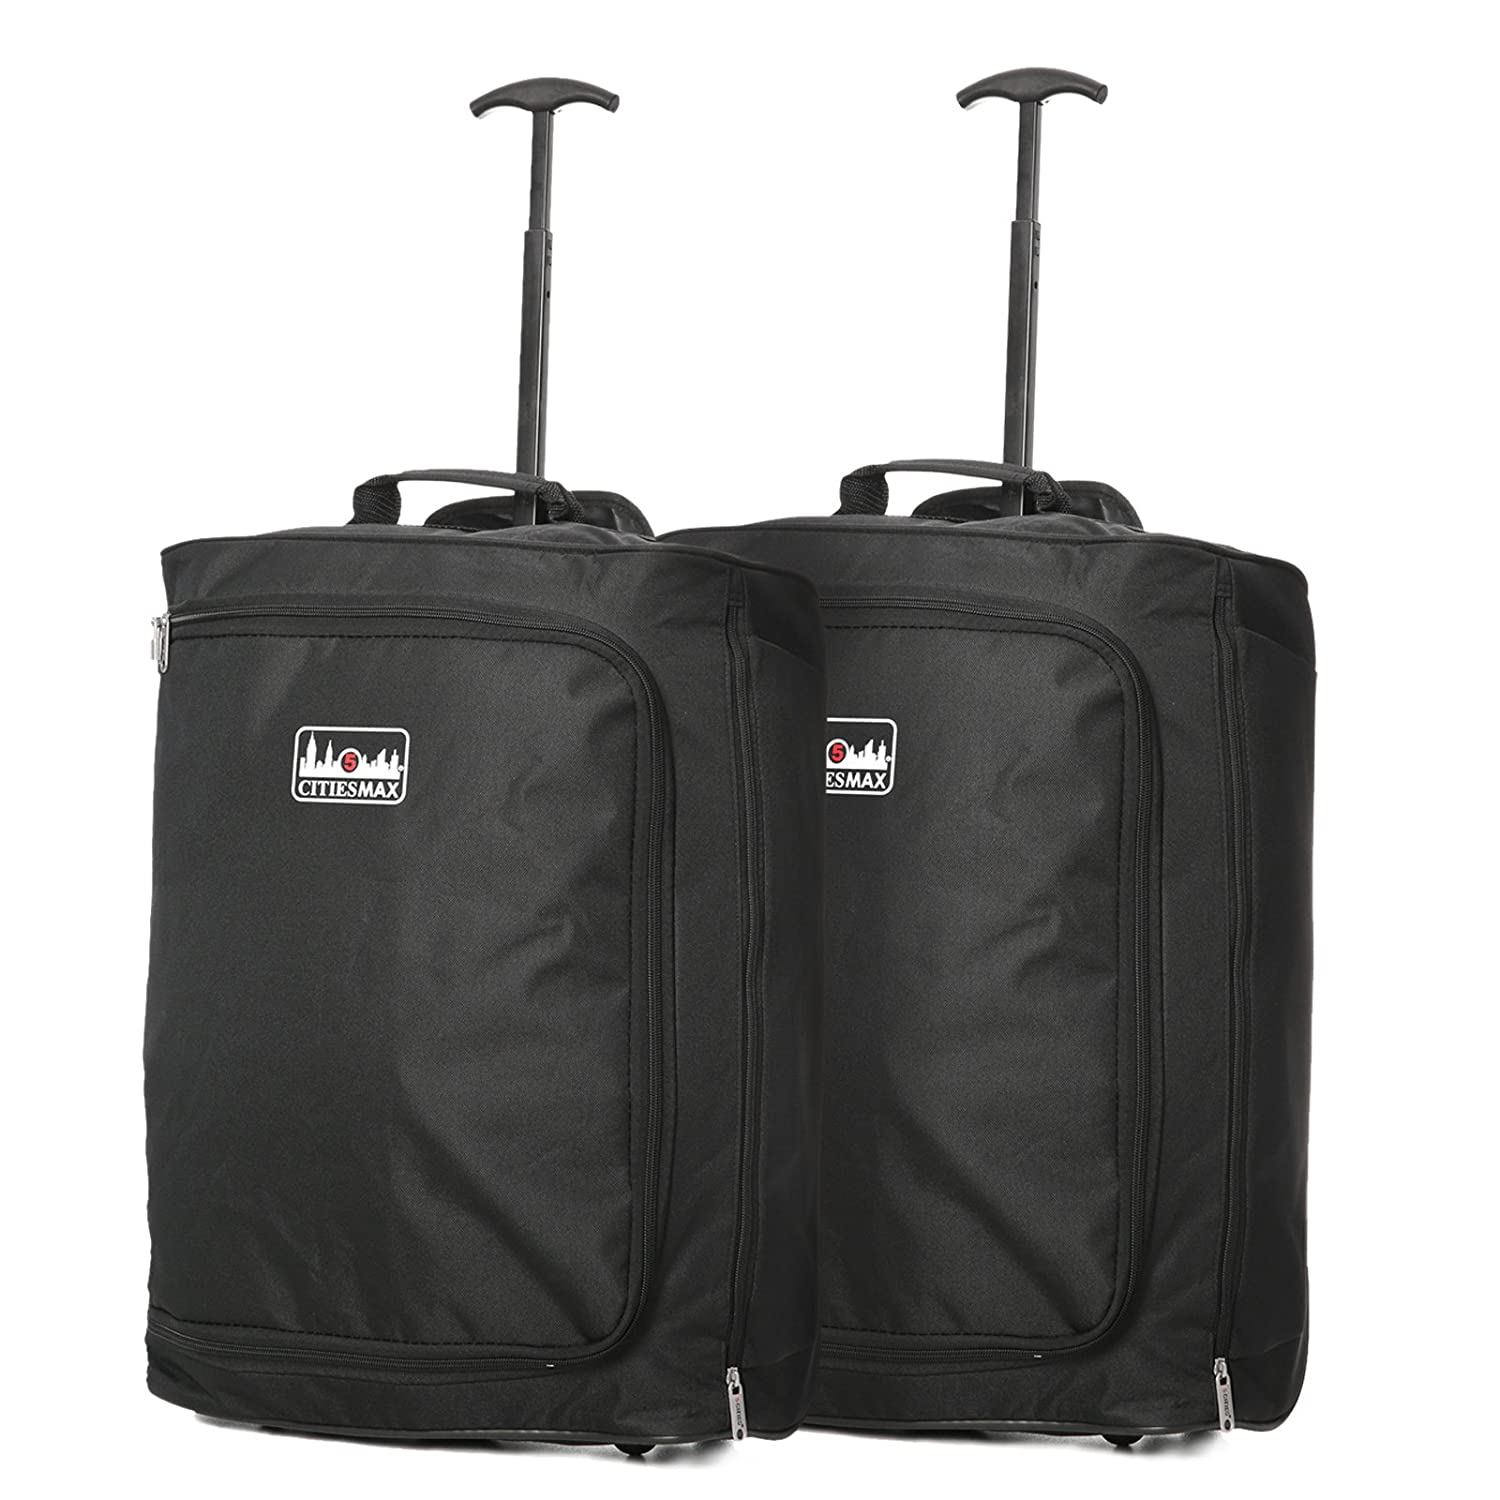 Set of 2 55x40x20cm Ryanair Maximum Cabin Hand Luggage Approved Trolley Bag, 42L Black + Rose Gold